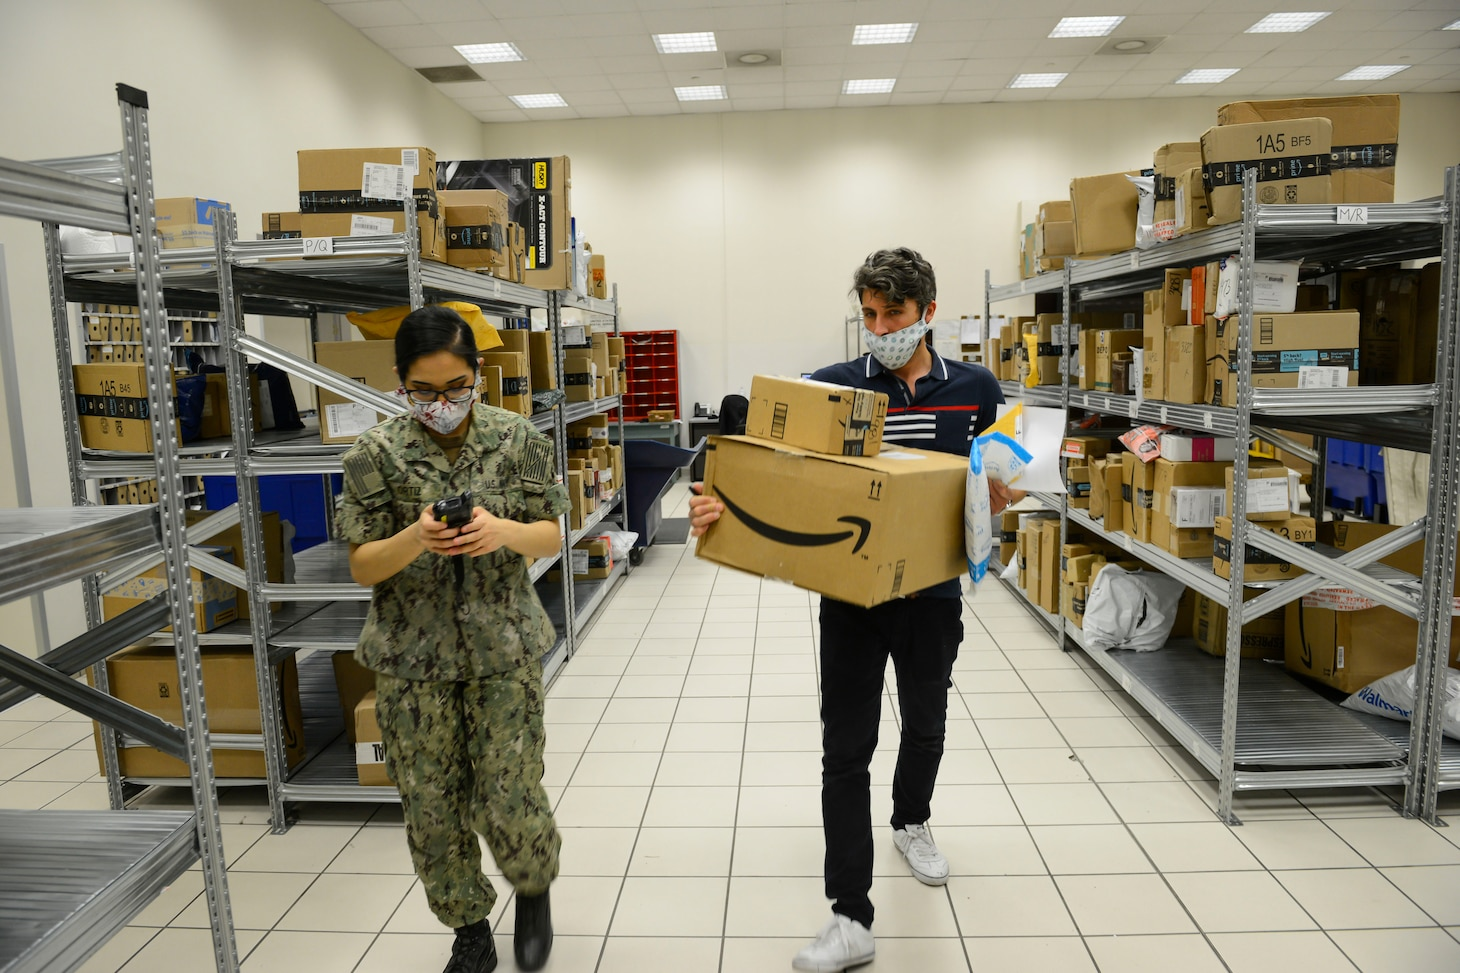 NAPLES, Italy (April 30, 2020) Francesco Ciccarelli, postal clerk (right), and Logistics Specialist Seaman Oralia Ortiz sort and organize incoming mail at the Naval Support Activity (NSA) Naples Support Site post office, attached to Naval Supply Systems Command Fleet Logistics Center (NAVSUP FLC) Sigonella, April 30, 2020. Commander, U.S. Naval Forces Europe-Africa/ U.S. 6th Fleet, headquartered in Naples, Italy, oversees joint and naval operations, often in concert with Allied, joint, and interagency partners, in order to advance U.S. national interests and security and stability in Europe and Africa. (U.S. Navy photo by Mass Communication Specialist Chief Justin Stumberg/Released)